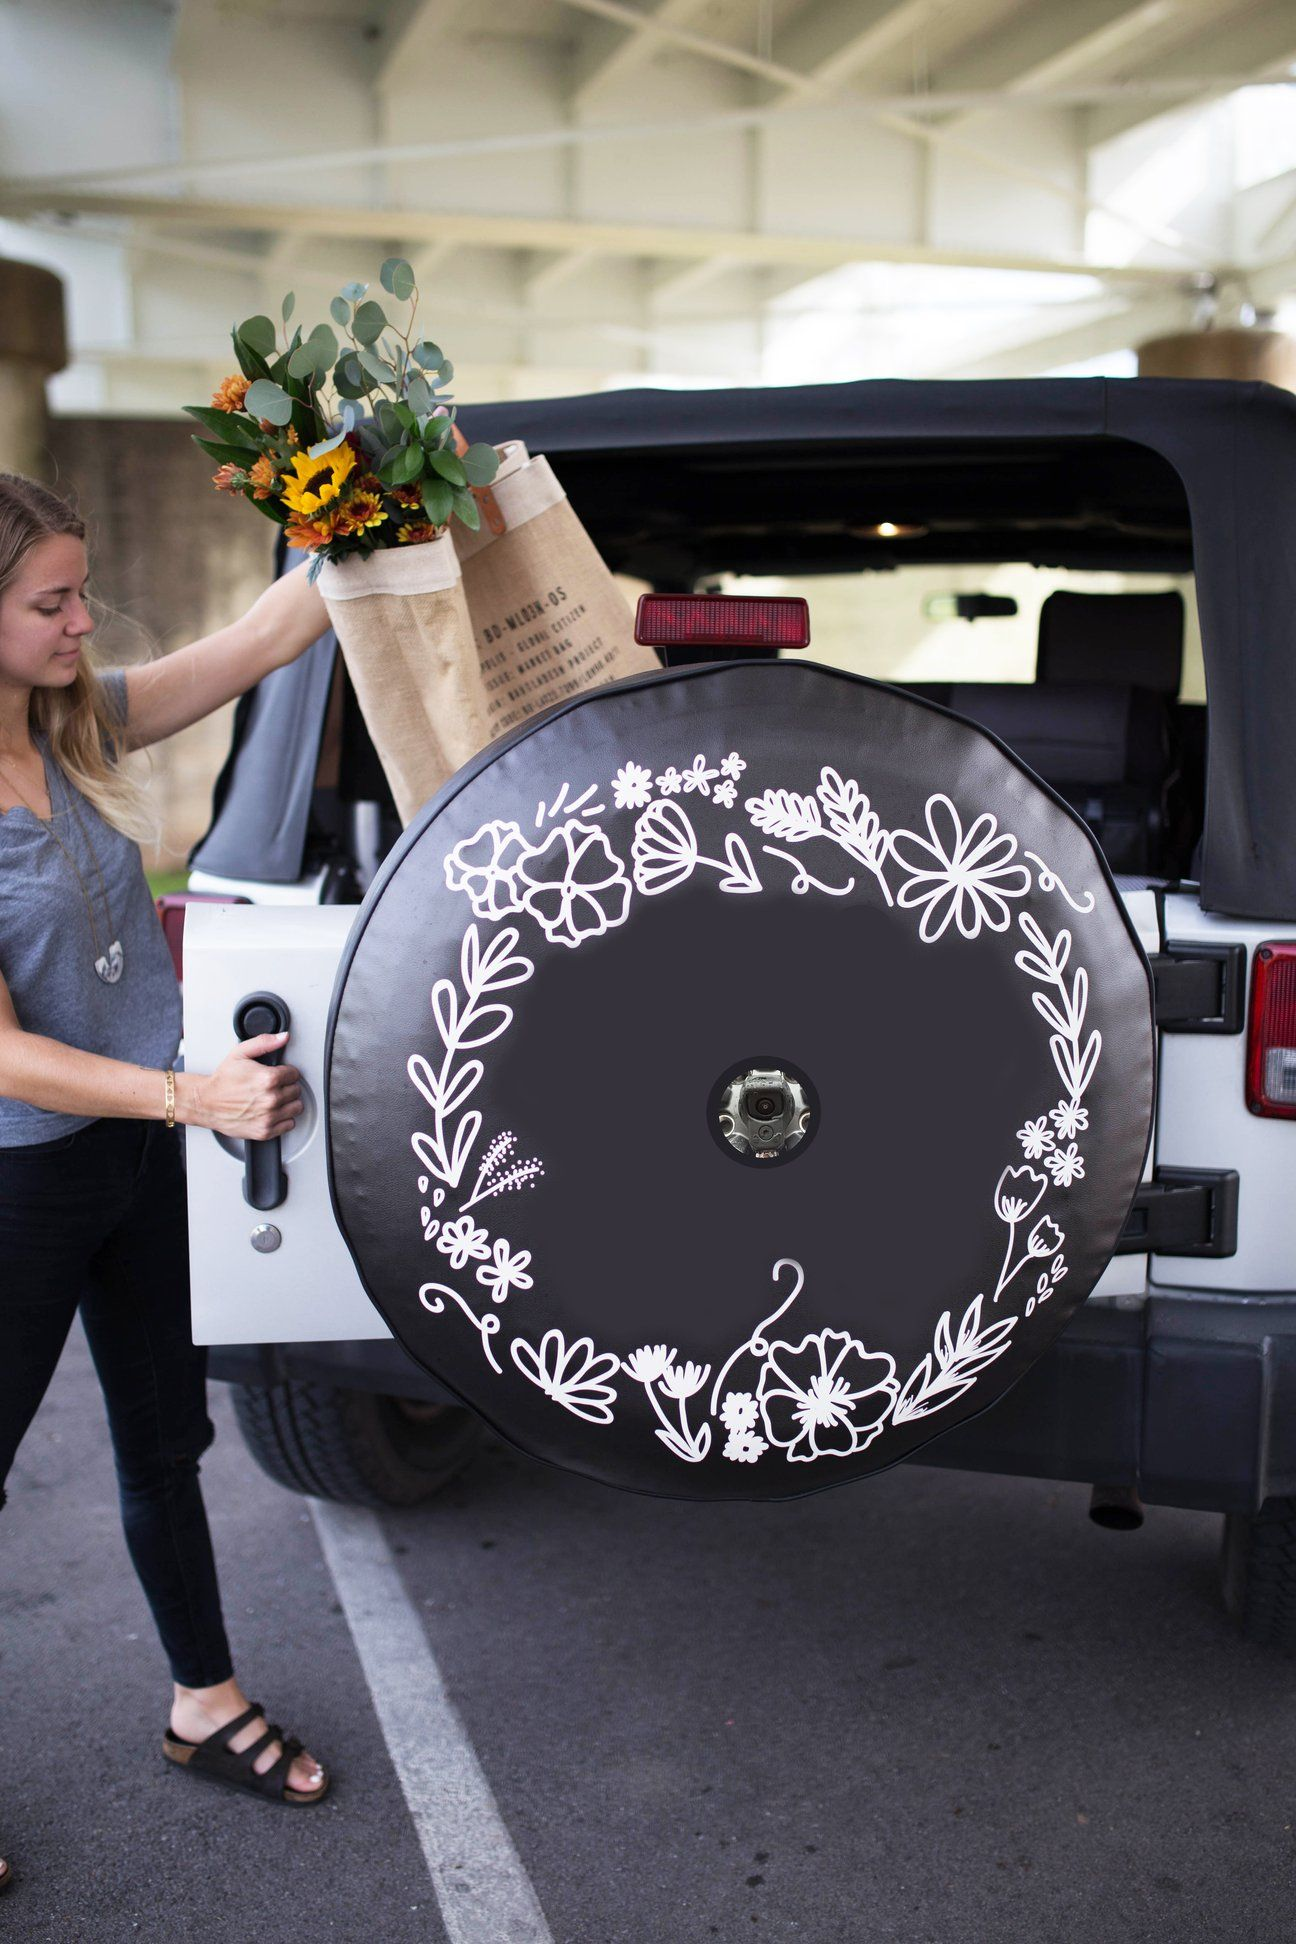 Jl Backup Camera Floral Wreath Jeep Tire Cover Tire Cover Floral Wreath Design